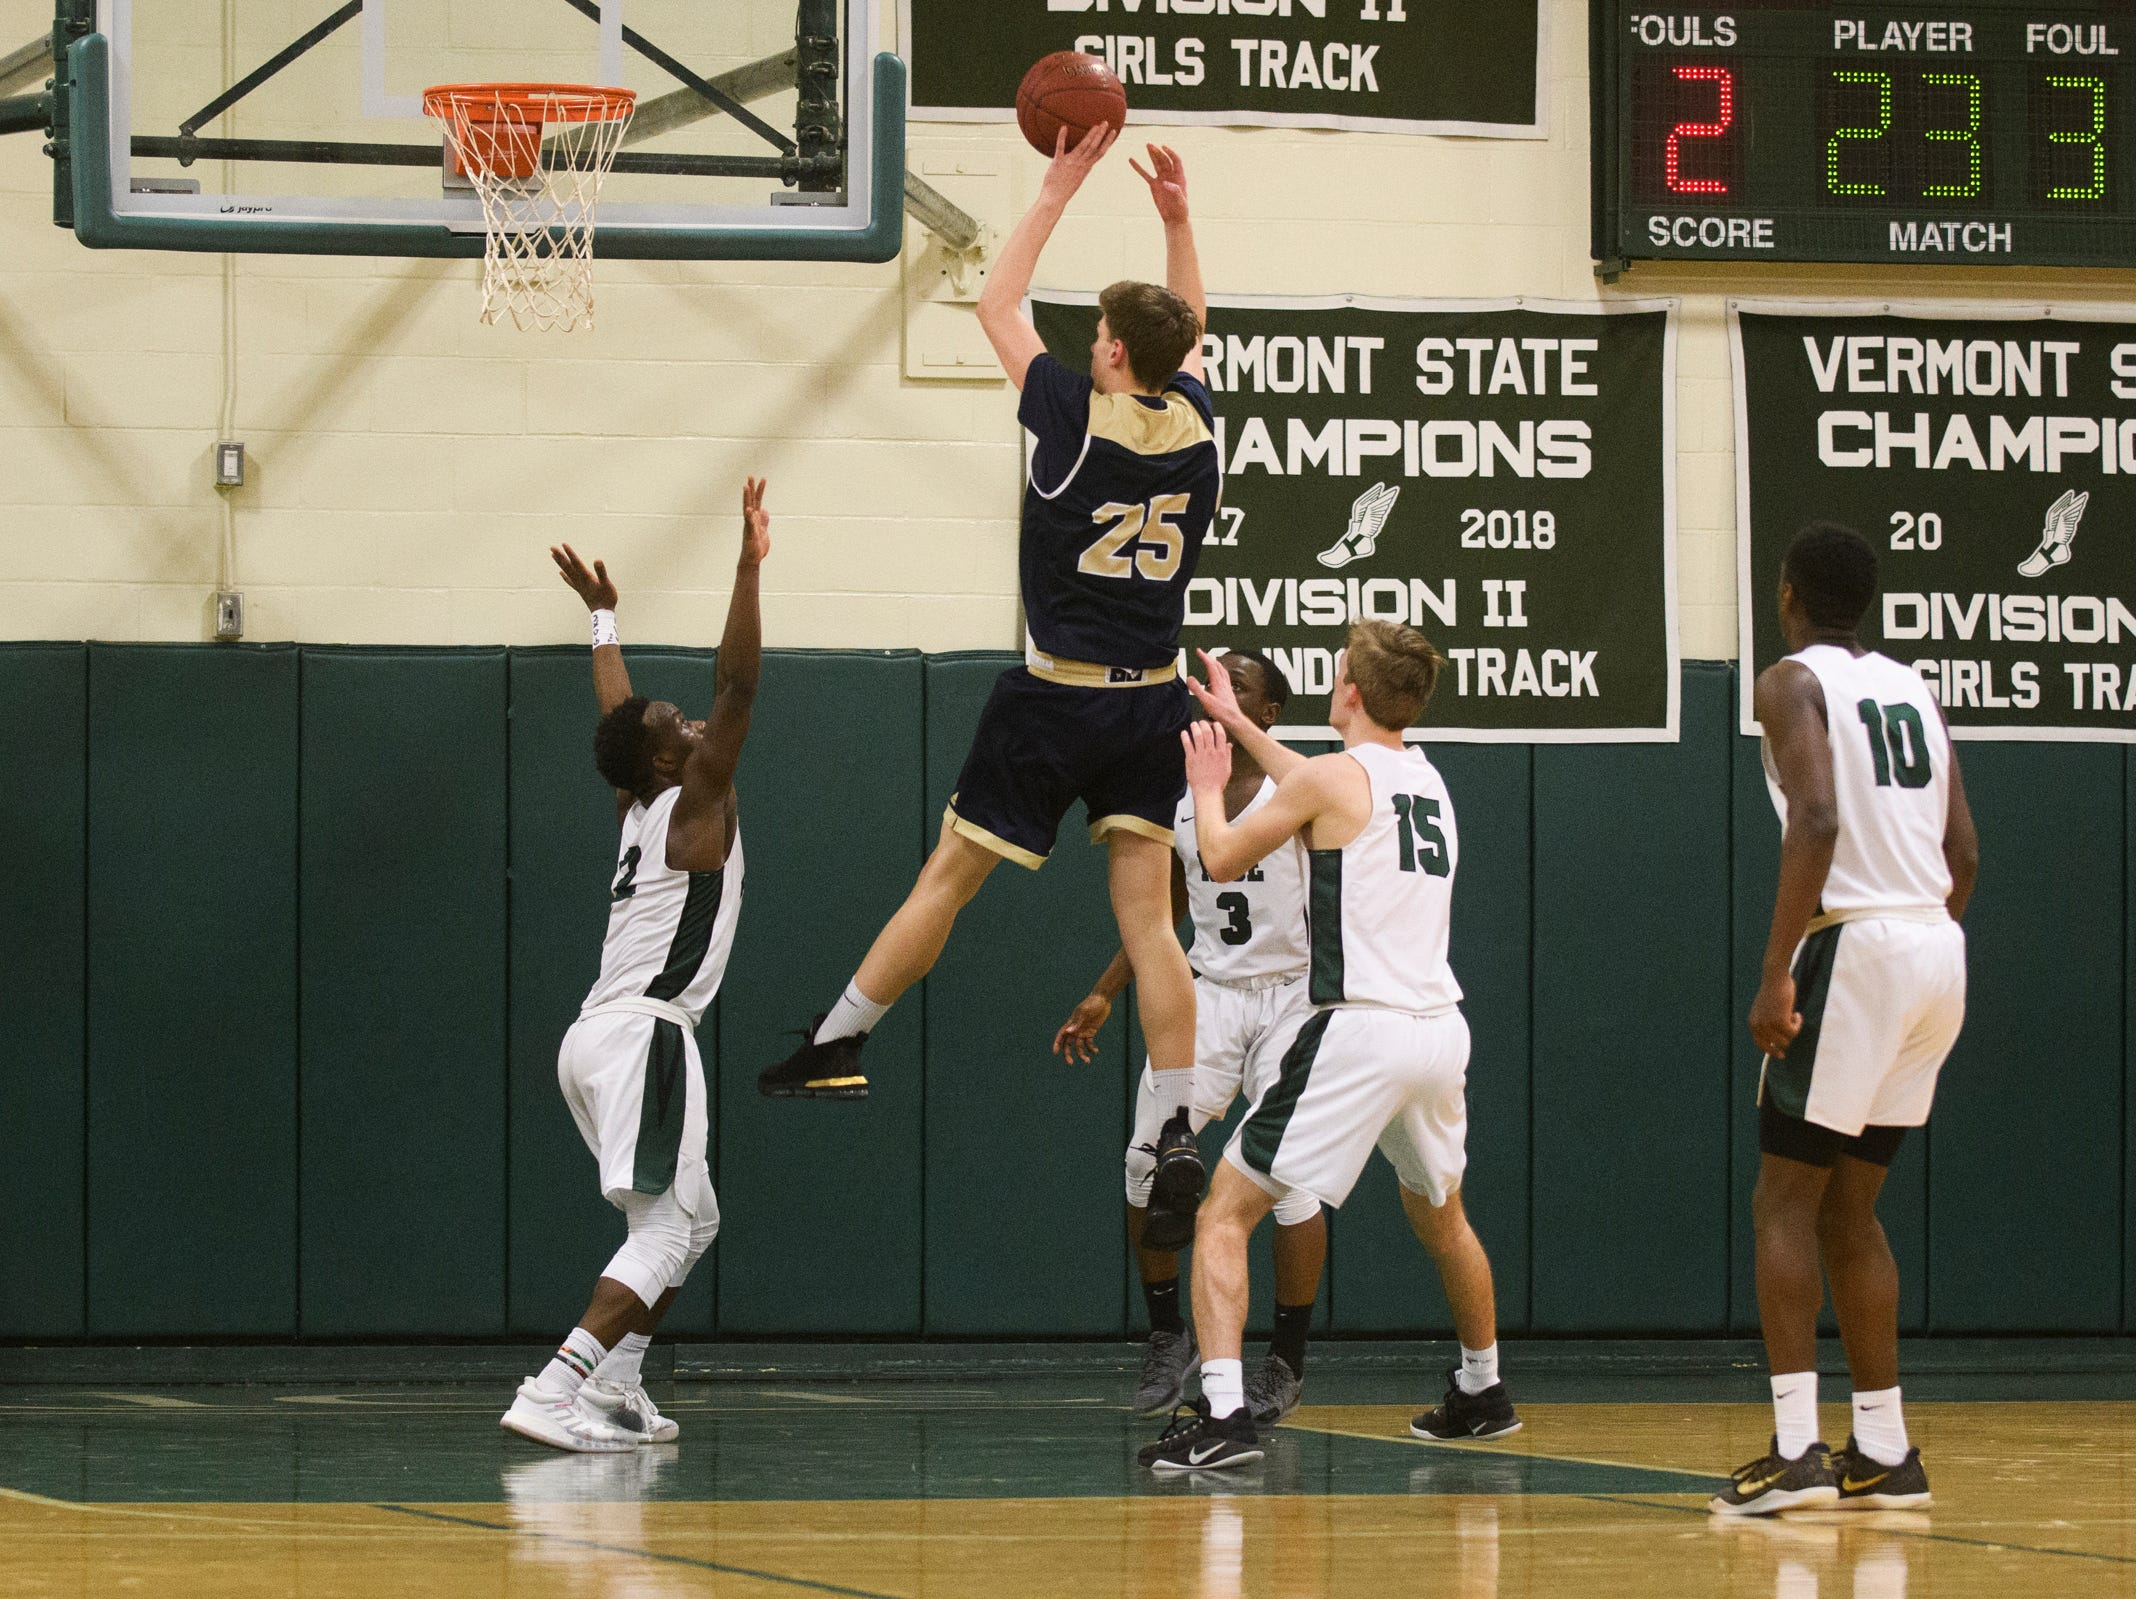 Essex's Mitchell Moffatt (25) leaps to take a shot during the boys quarterfinal basketball game between the Essex Hornets and the Rice Green Knights at Rice Memorial High School on Friday night March 8, 2019 in South Burlington, Vermont.